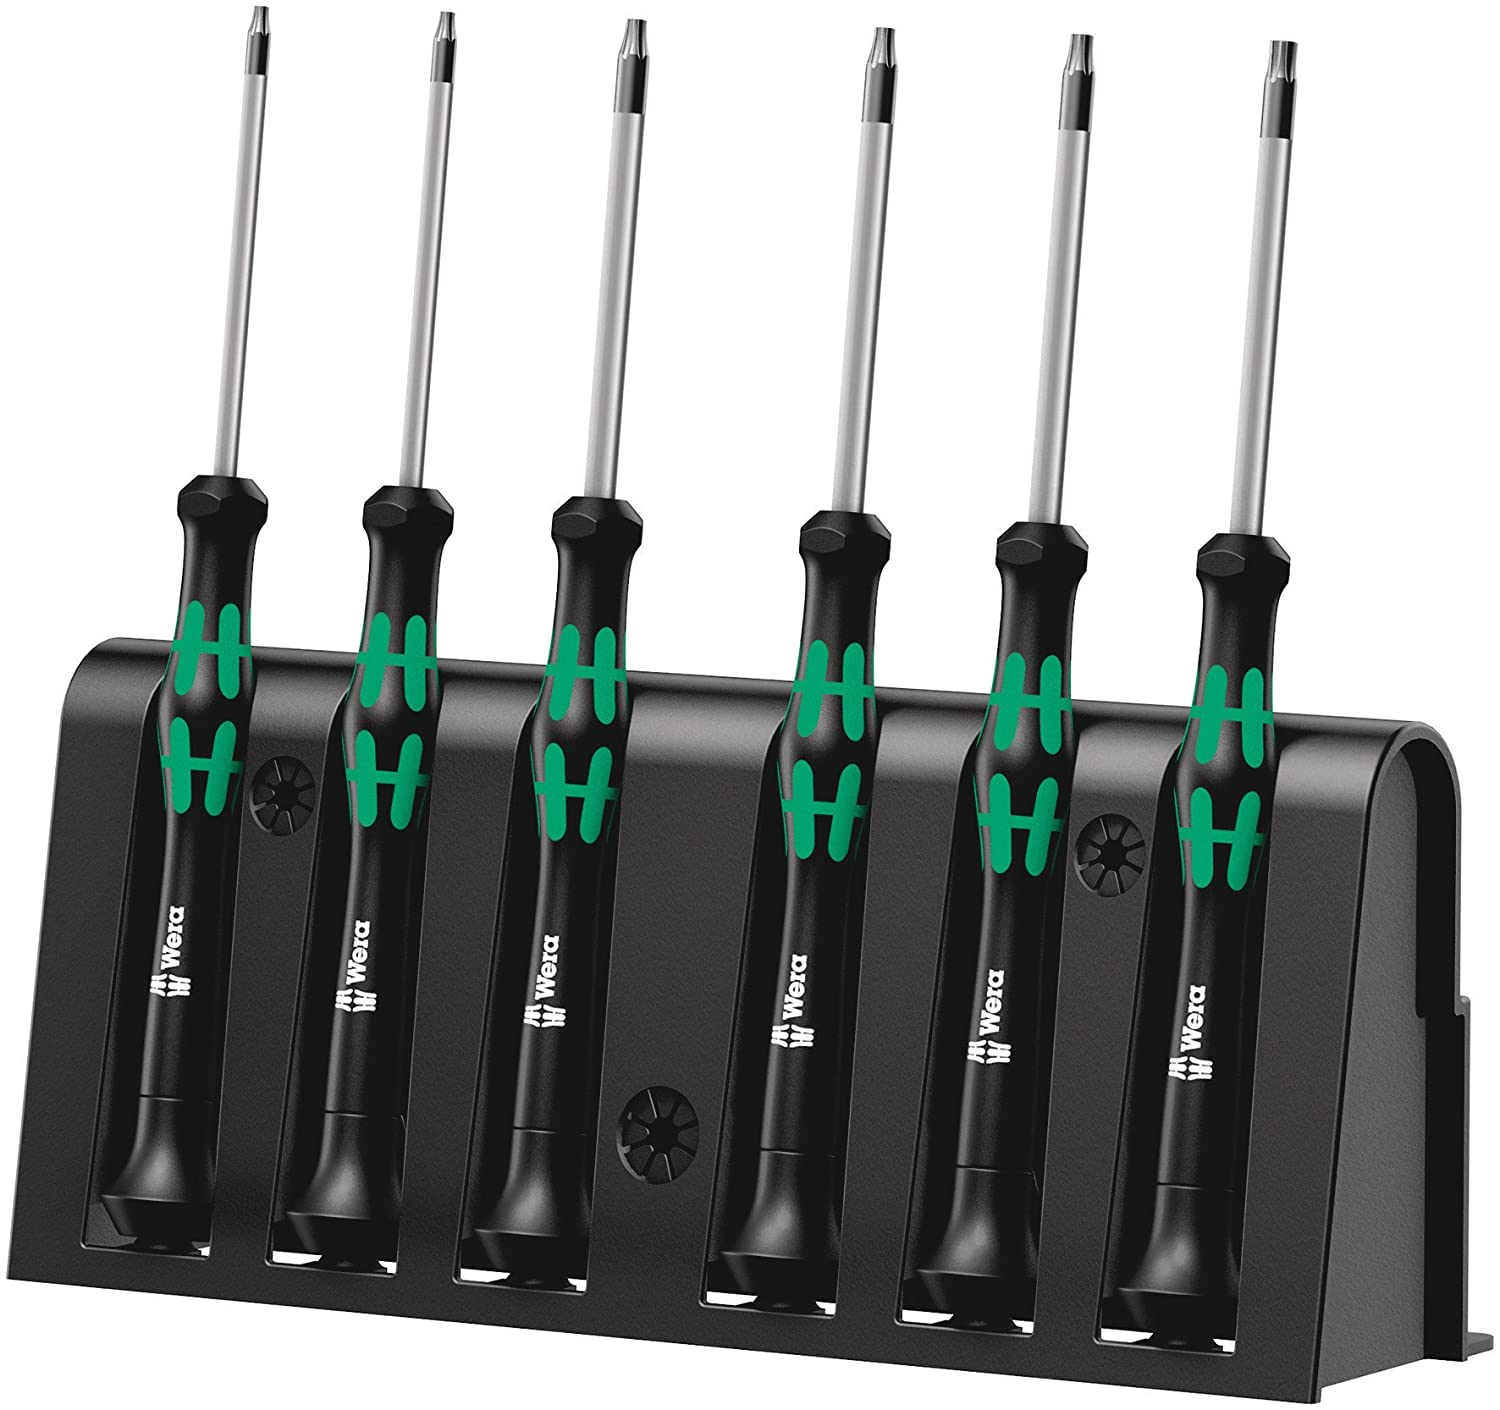 Wera Kraftform 2067 Micro Screwdriver Set - Torx Tip 6 Piece Set 05118154001 Hand Tools Screwdrivers - Micro Instrument Jeweller Screwdrivers - Screwdriver Bits and Allen Keys Wera Micro Series Screwdrivers - Sets